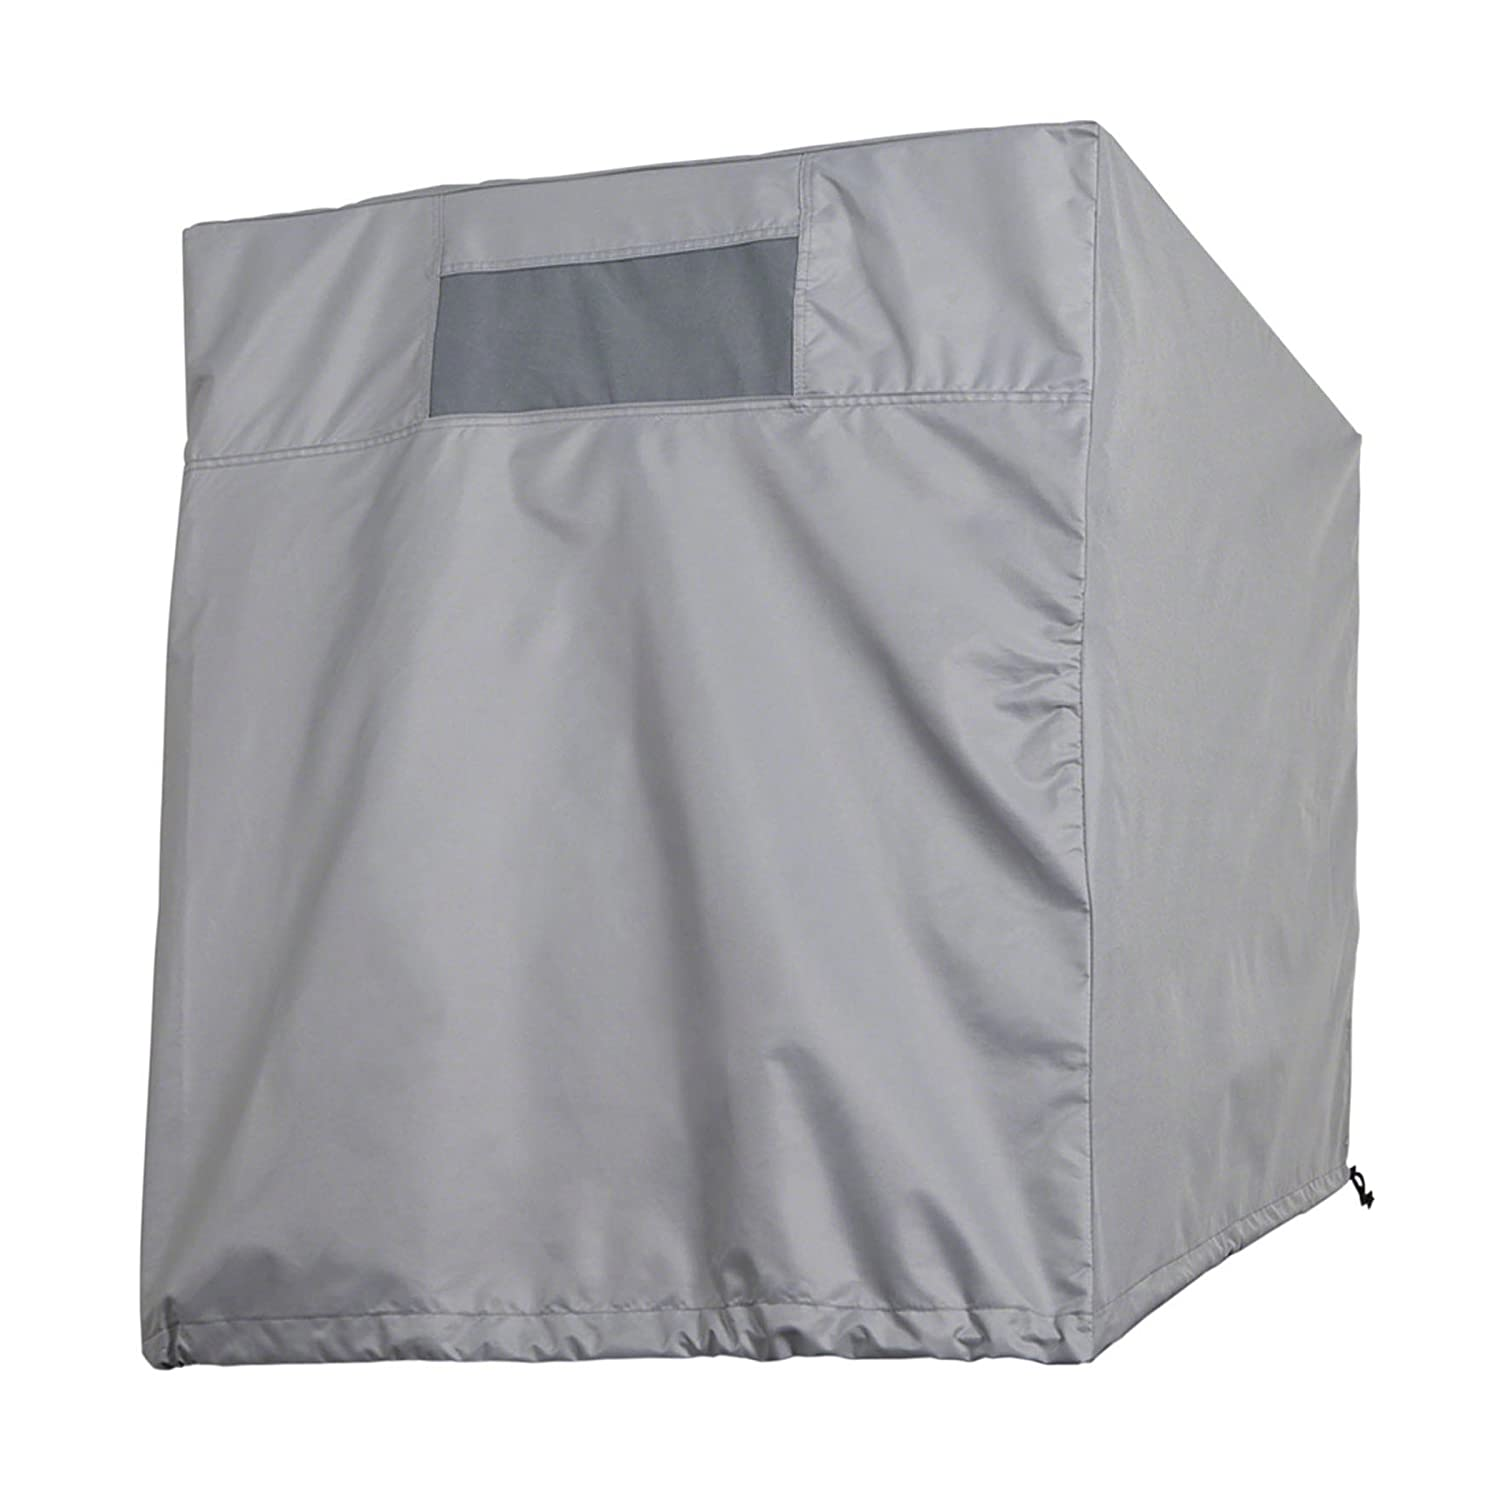 Classic Accessories Down Draft Evaporation Cooler Cover, 41 W x 41 D x 37 H